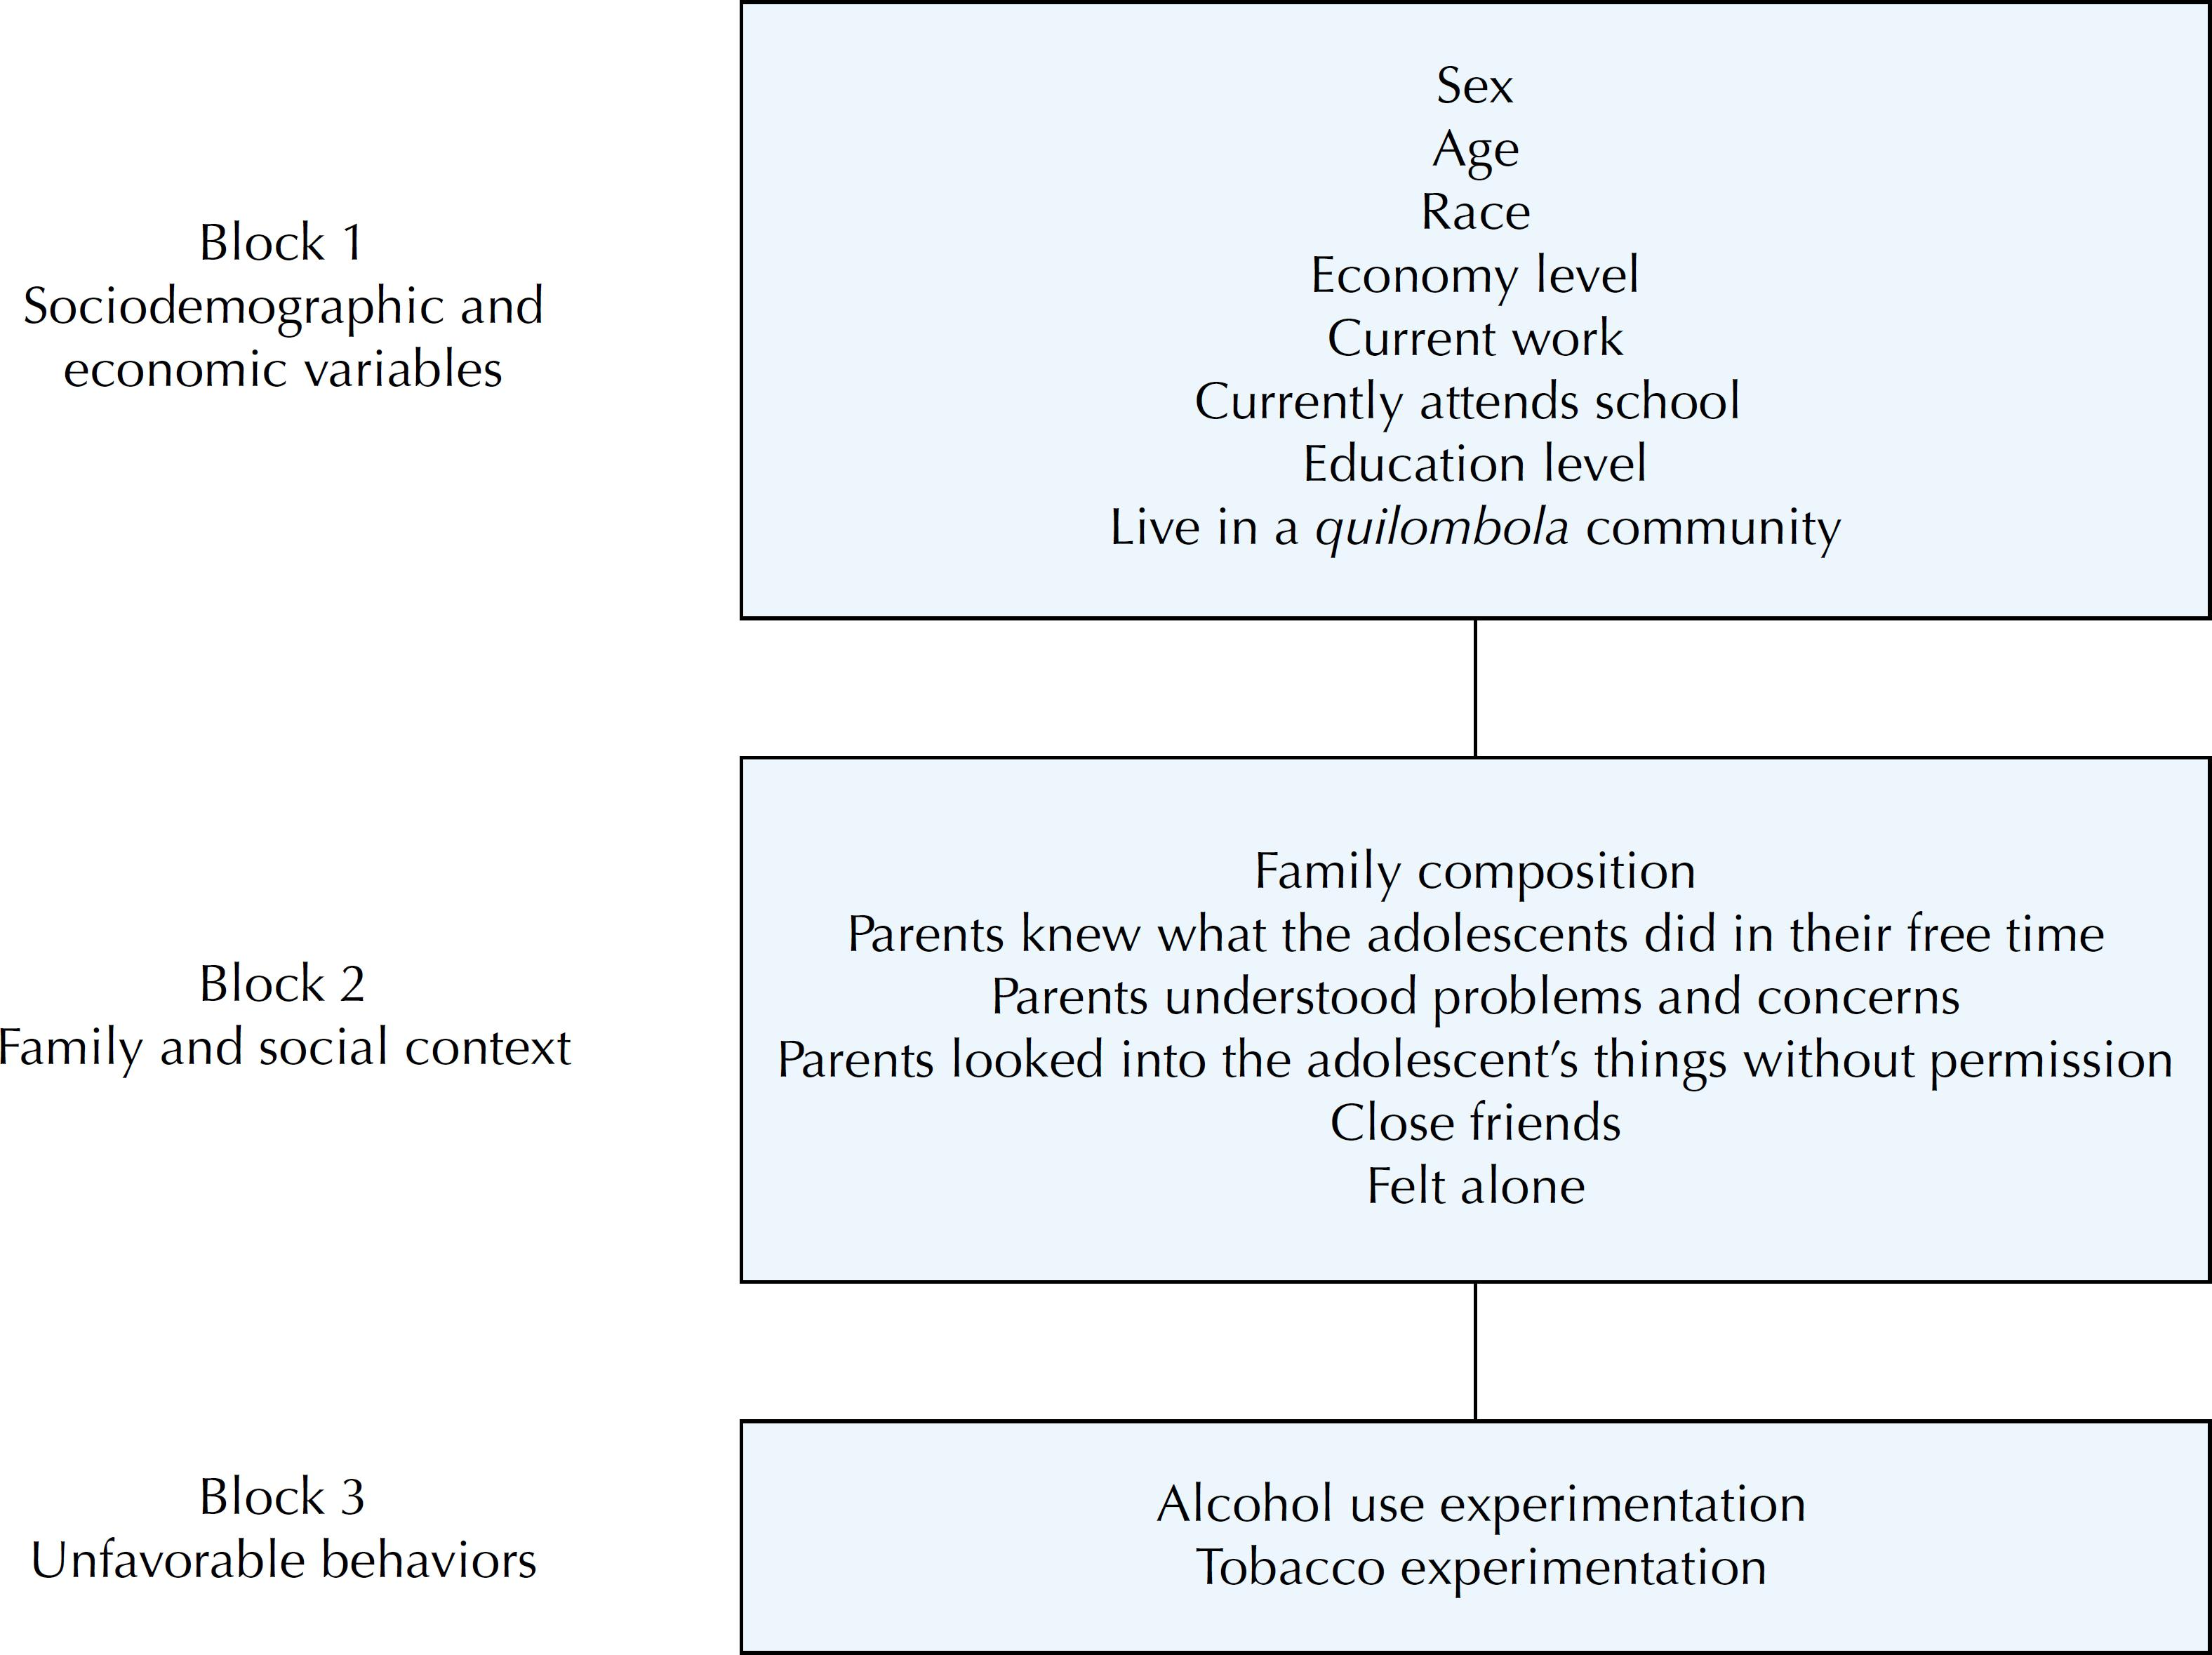 Theoretical model for the study of the sexual behavior of adolescents and associated factors. Research ADOLESCER, Bahia, Brazil, 2015.